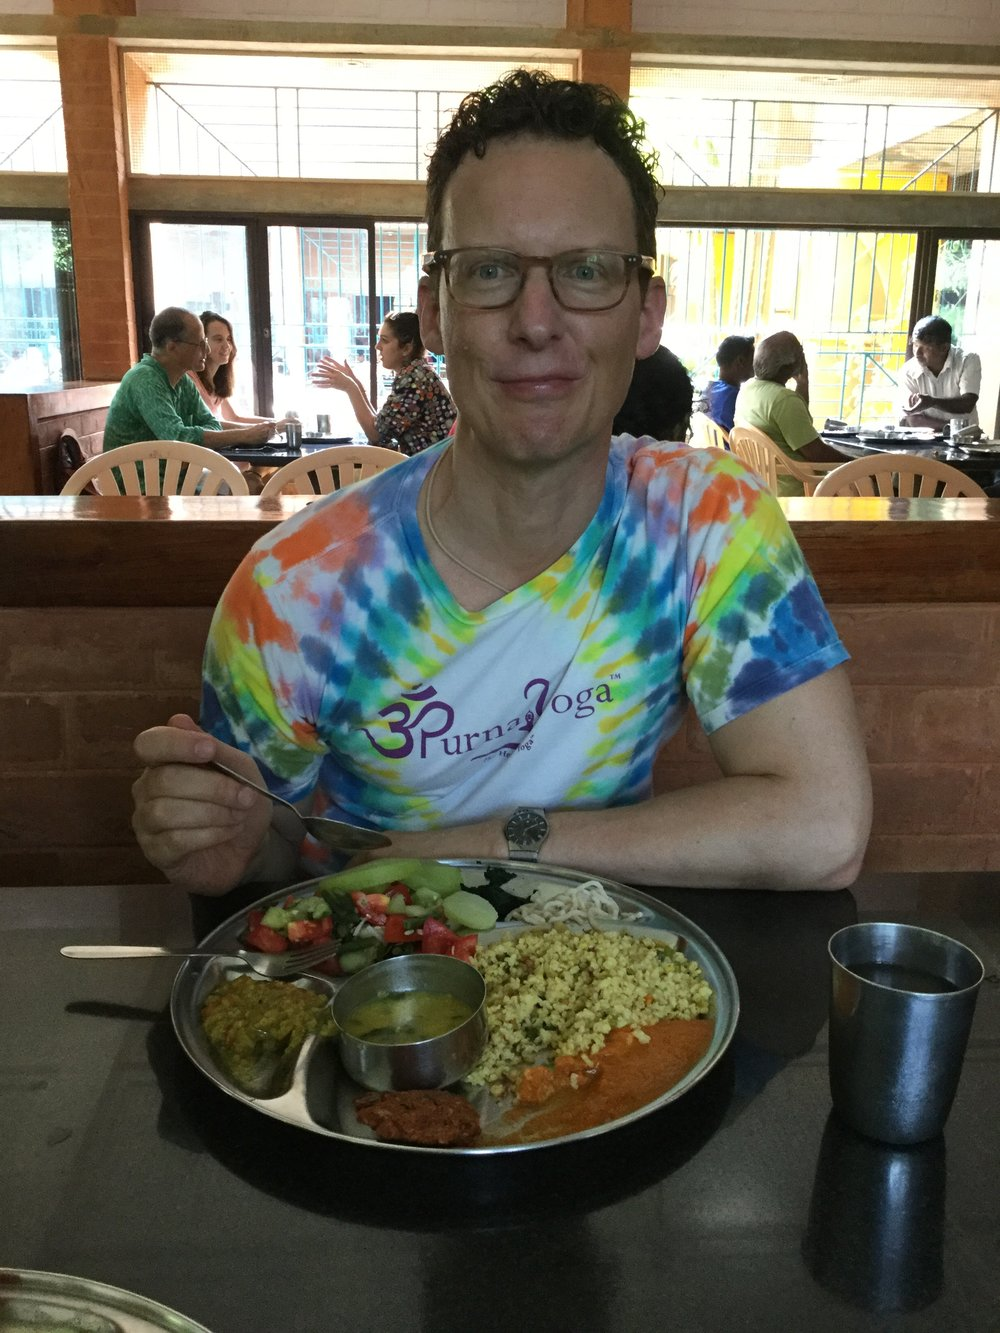 We had lunch at the Solar Kitchen - a real Auroville experience